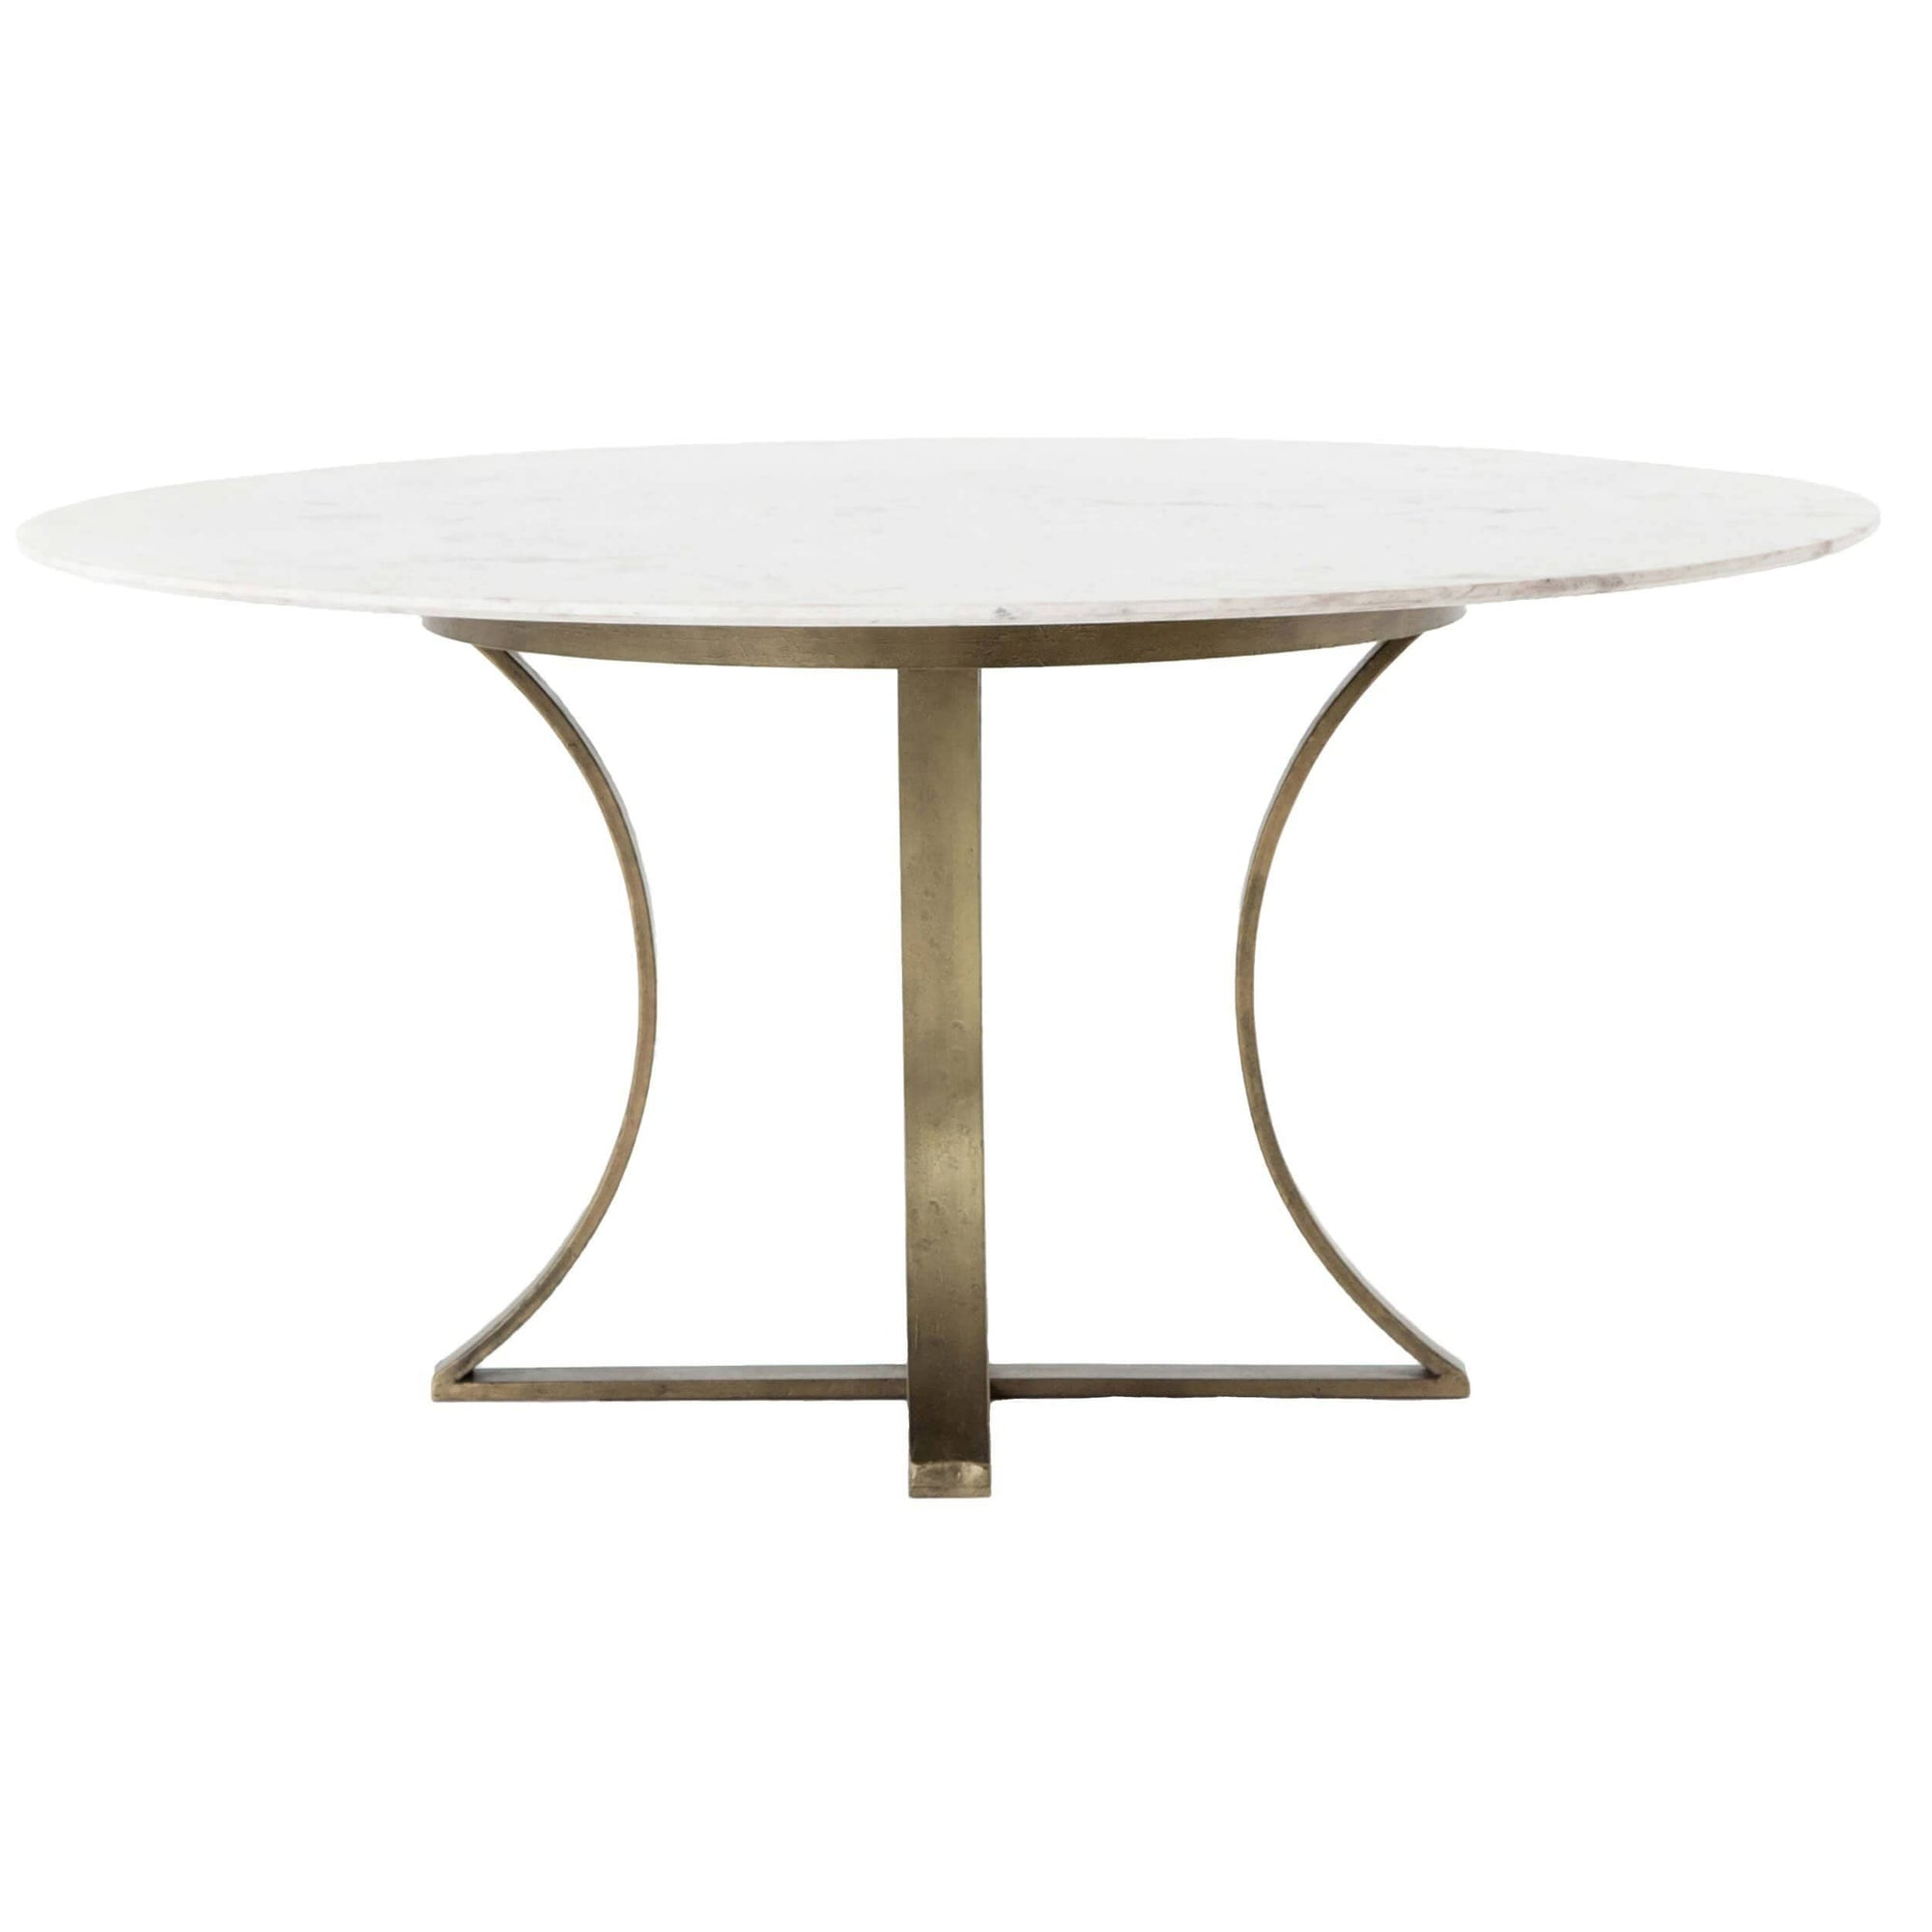 Pleasing Gage Round Dining Table White Marble High Fashion Home Caraccident5 Cool Chair Designs And Ideas Caraccident5Info